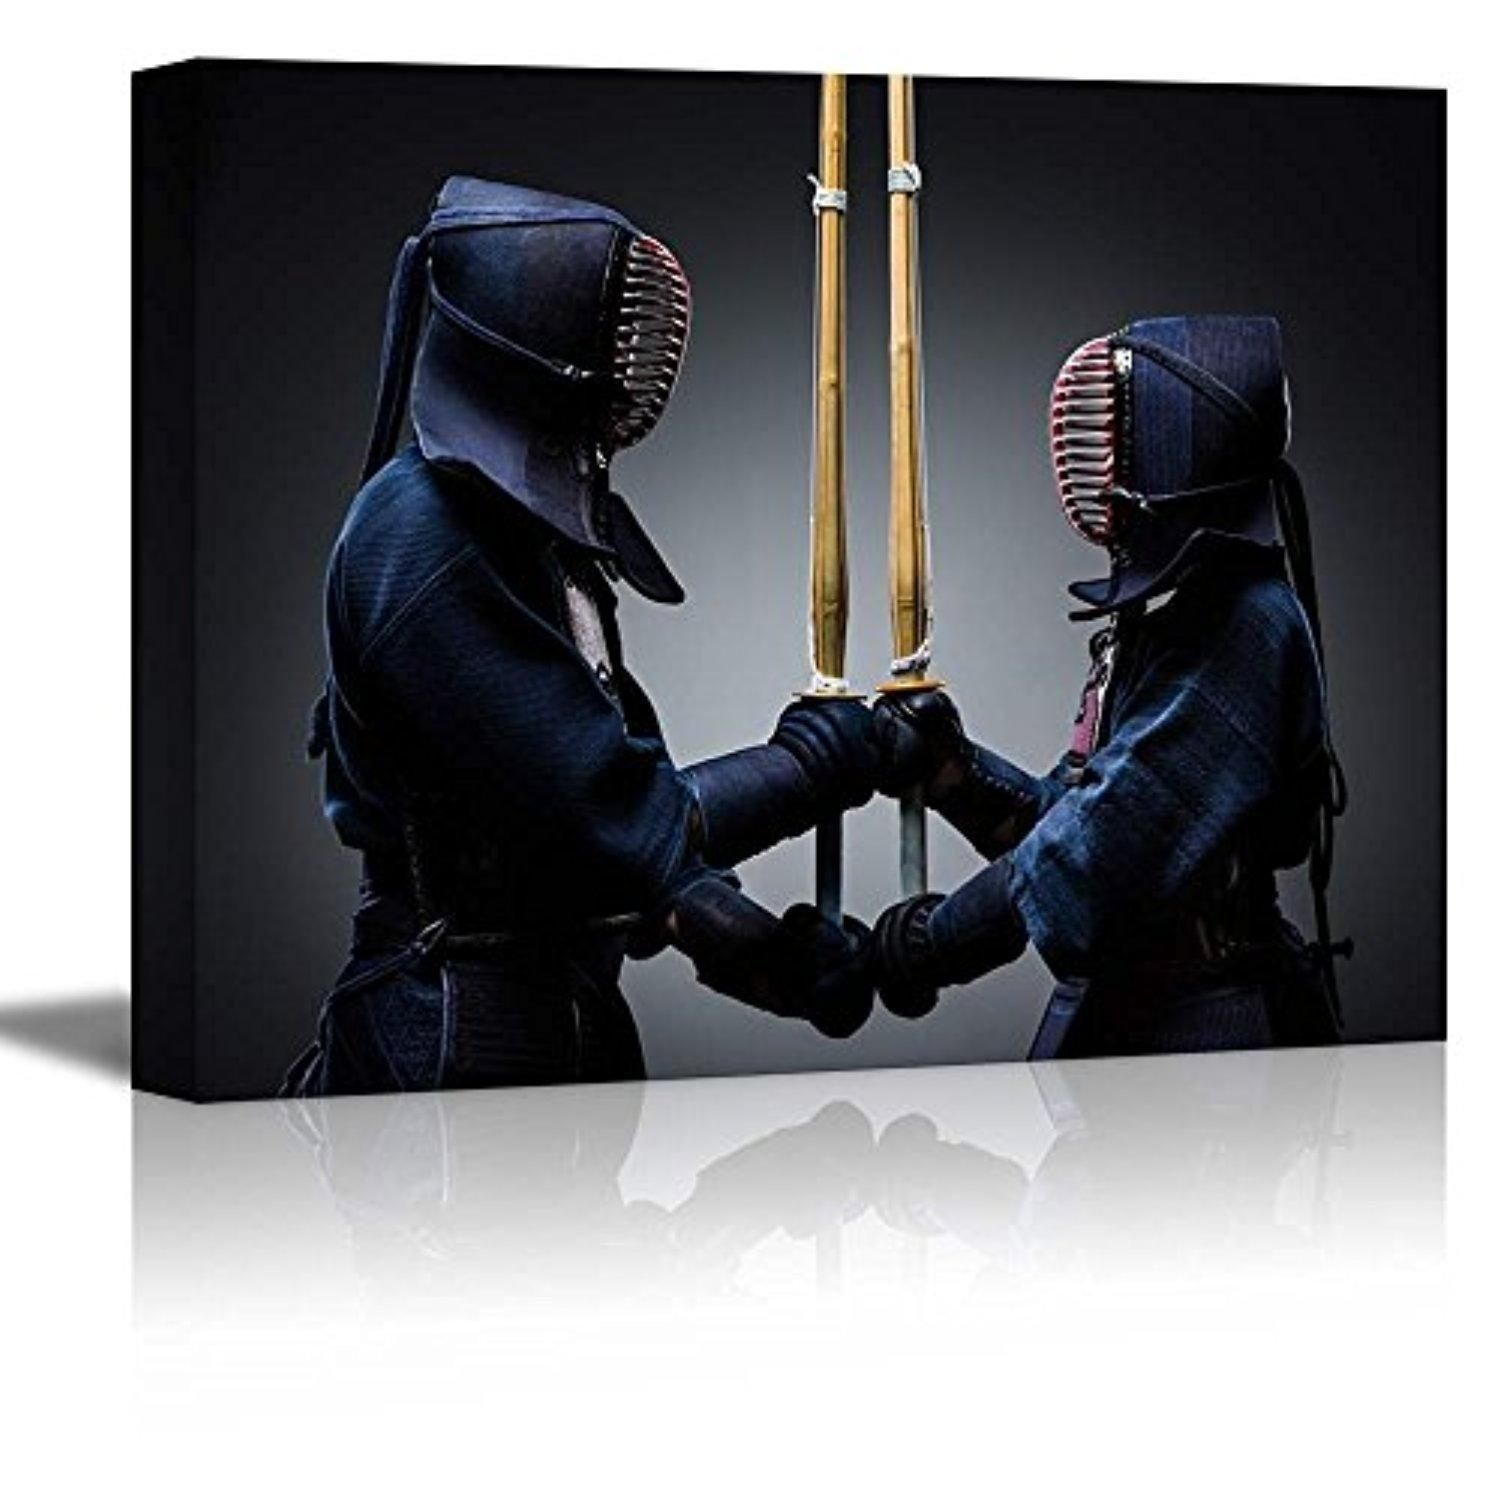 "Wall26 - Canvas Prints Wall Art - Two Kendo Fighters with Shinai Opposite Each Other | Modern Wall Decor/ Home Decoration Stretched Gallery Canvas Wrap Giclee Print. Ready to Hang - 12"" x 18"" - Brought to you by Avarsha.com"